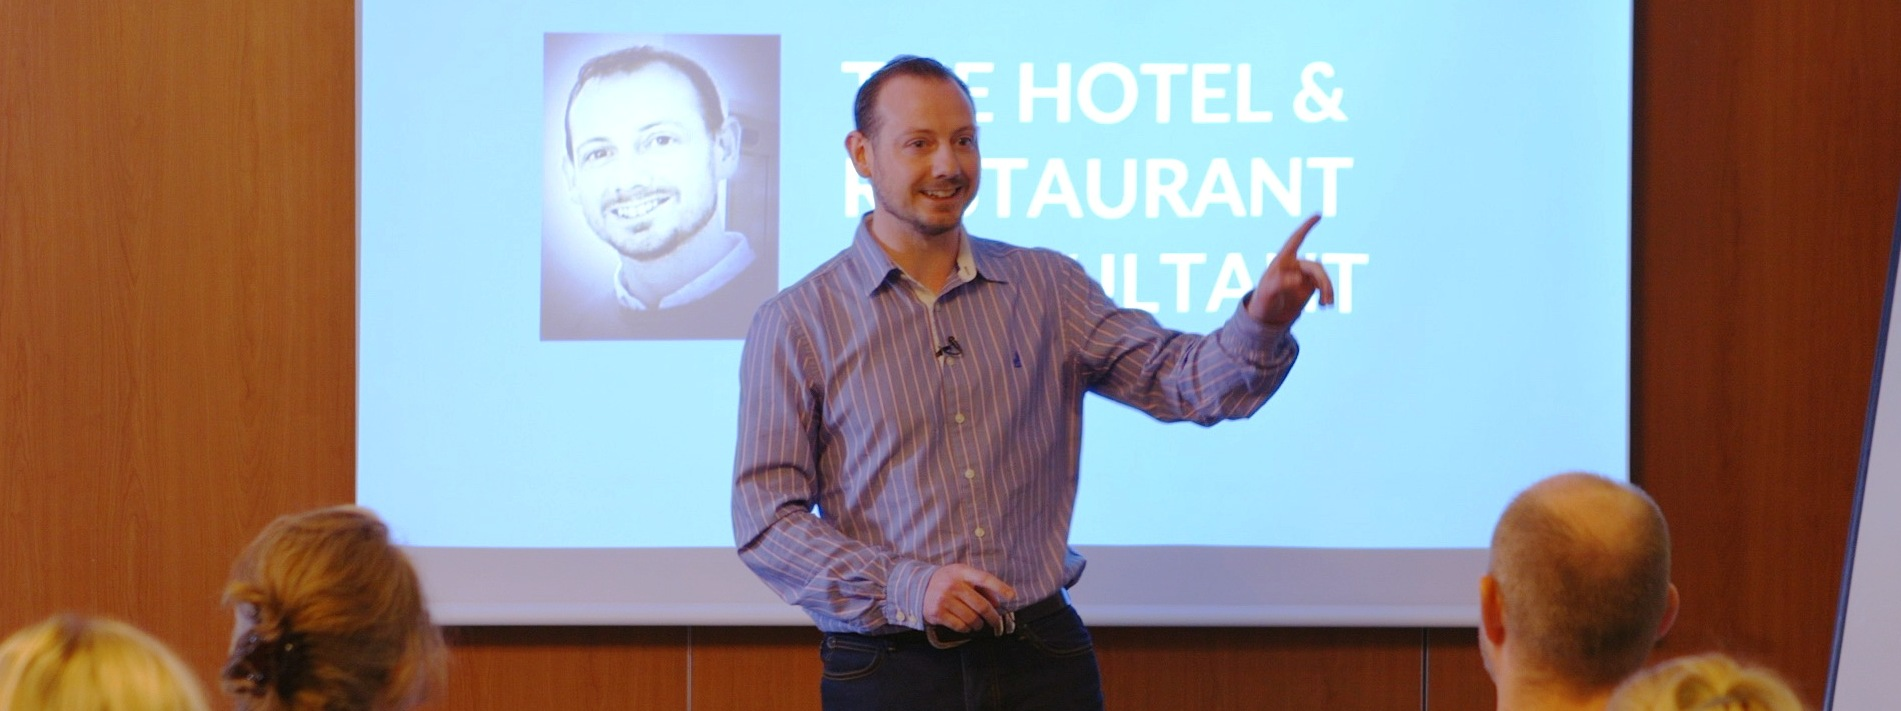 Jonathan Butler - Hospitality business speaker